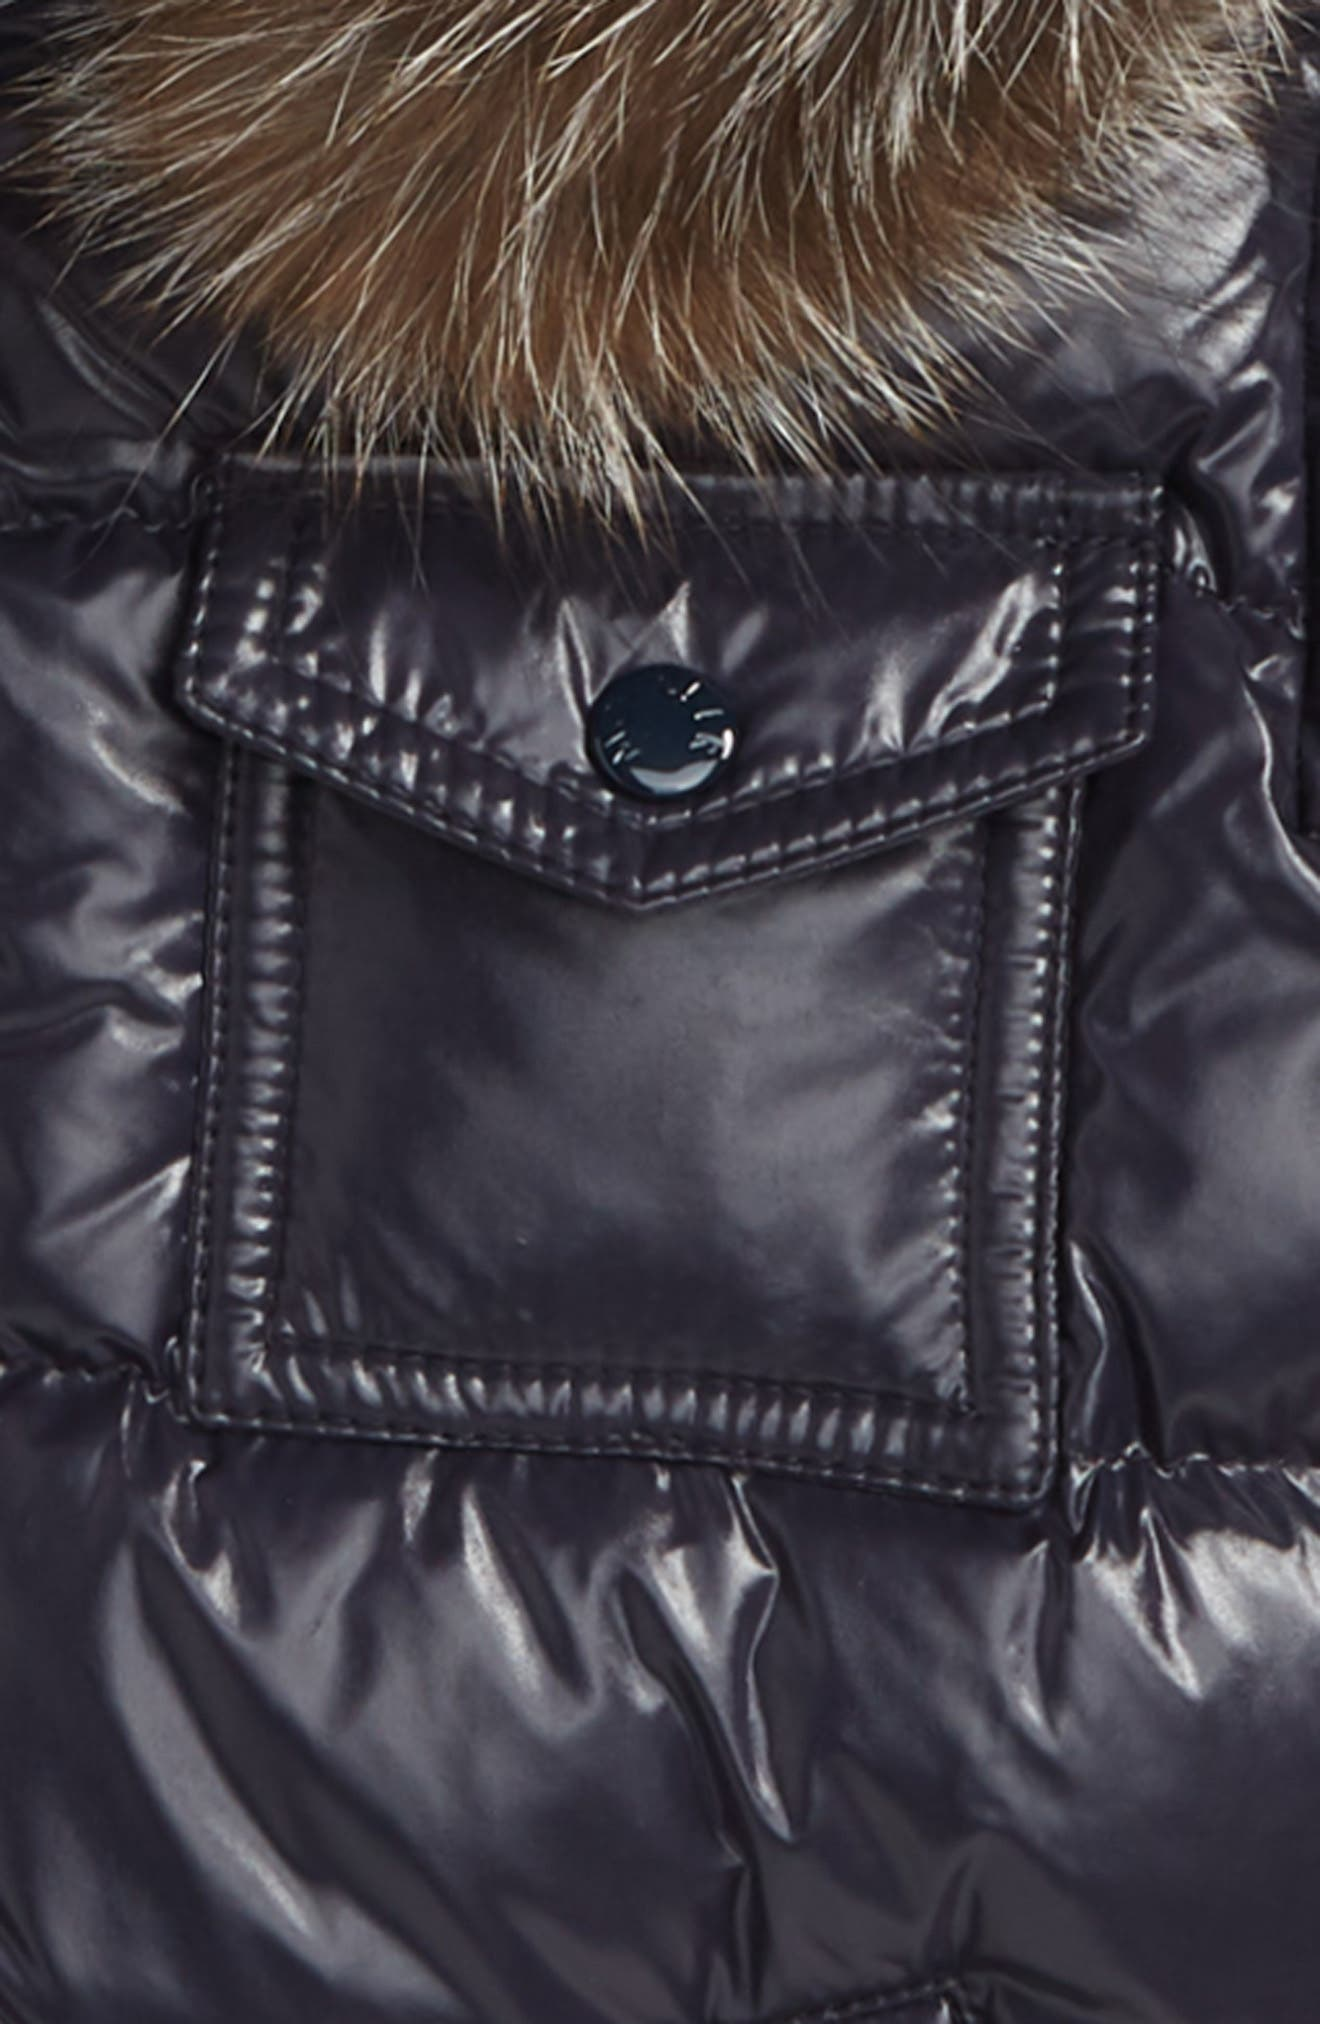 K2 Water Resistant Hooded Down Jacket with Genuine Fox Fur Trim,                             Alternate thumbnail 2, color,                             NAVY